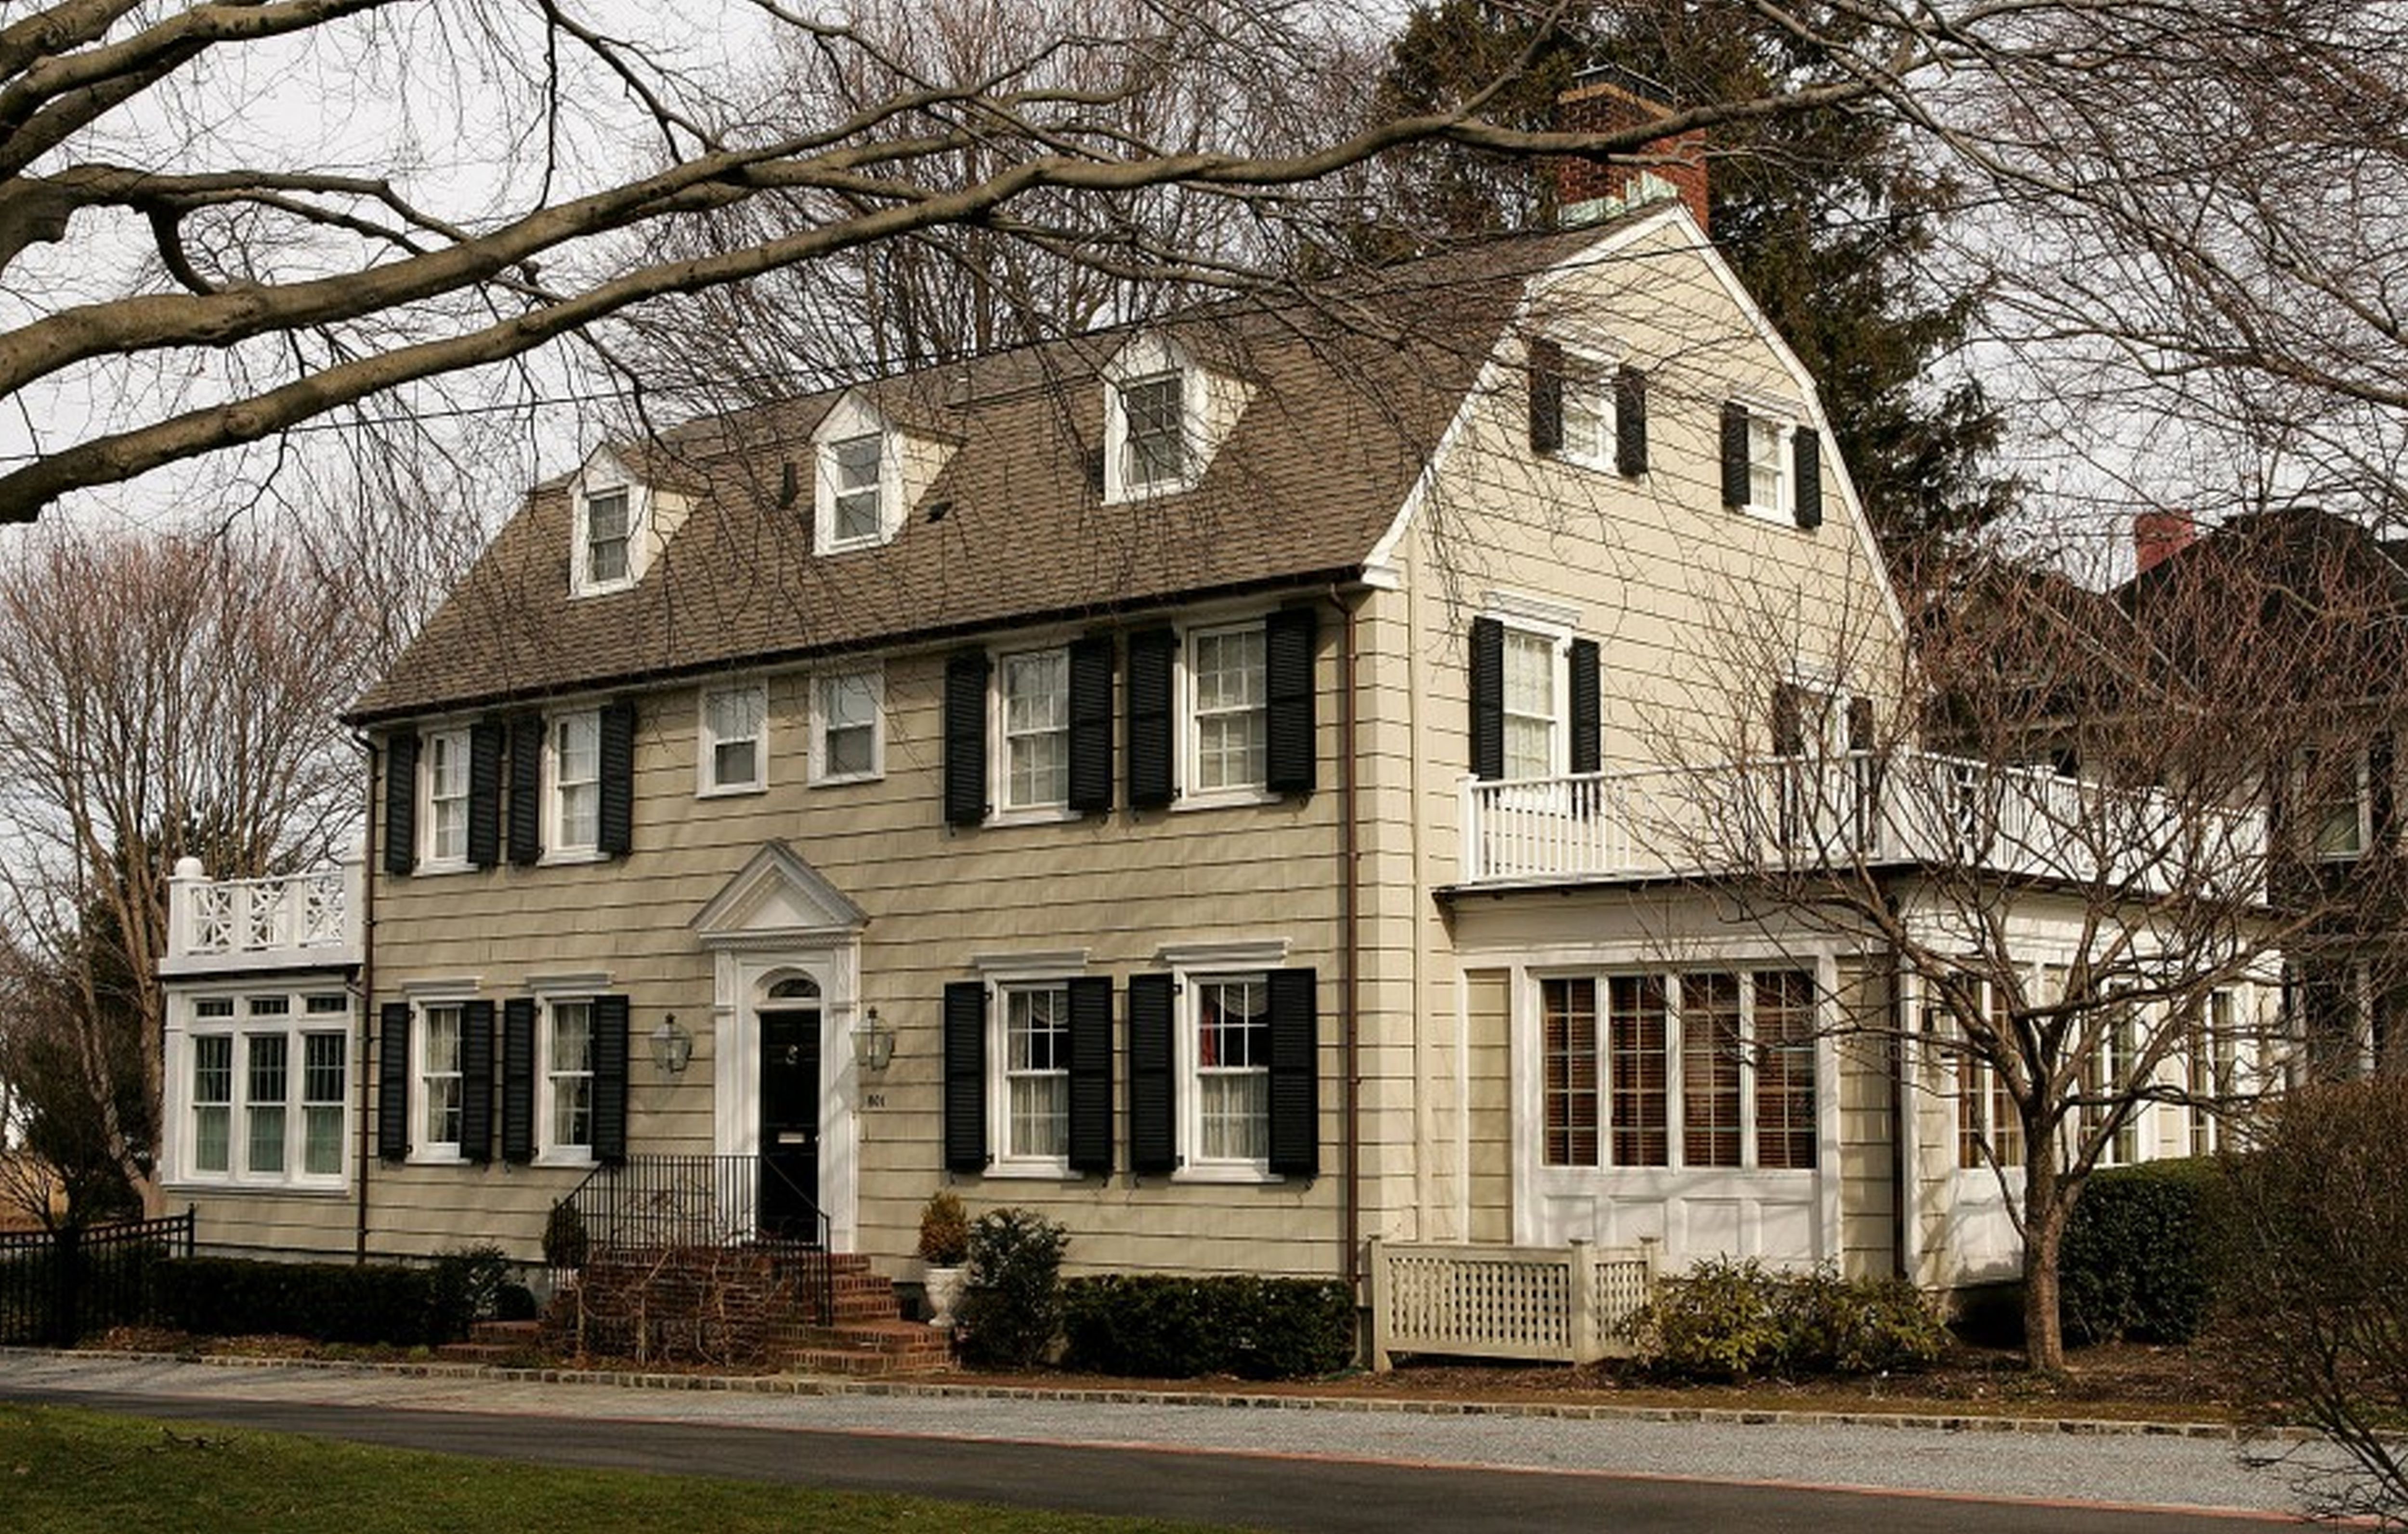 Dutch Colonial Homes Awesome Dutch Colonial House Plans White Cream Interior Autums Horror House The Amityville Horror House Dutch Colonial Homes